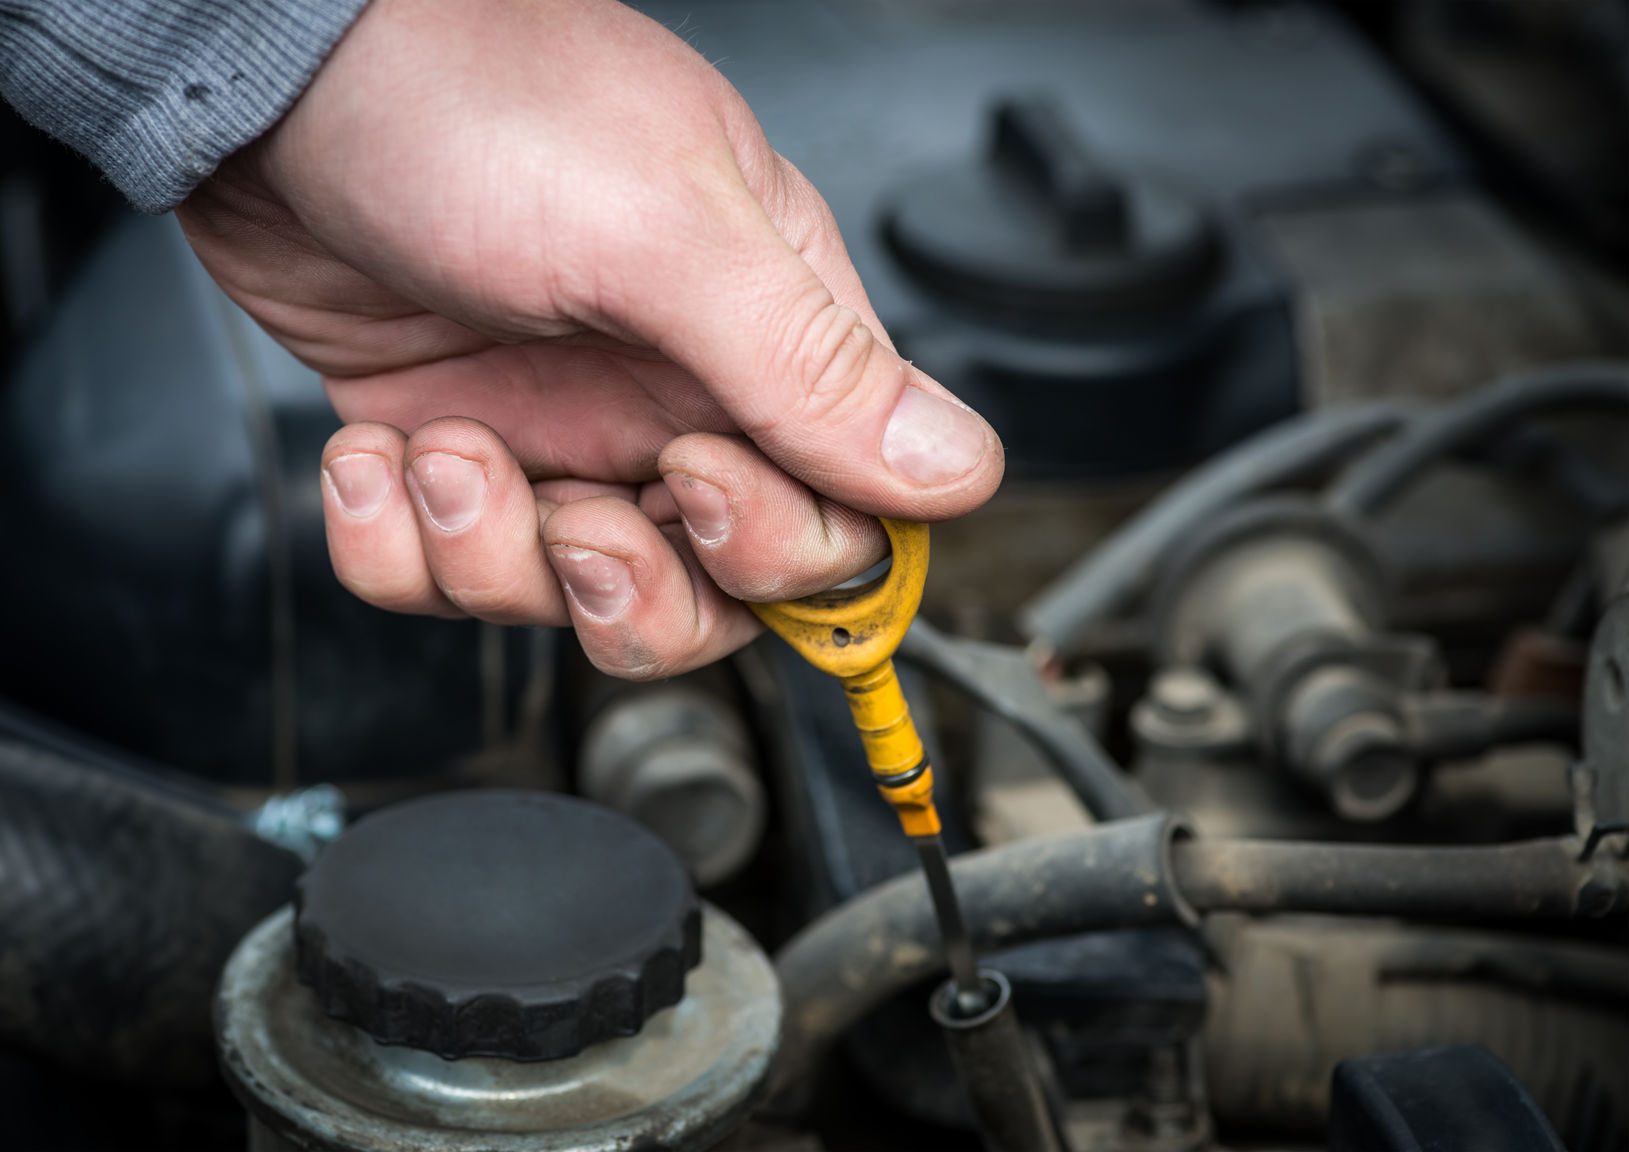 Auto Maintenance Blog for Chicago - MilitosAutoRepair.com